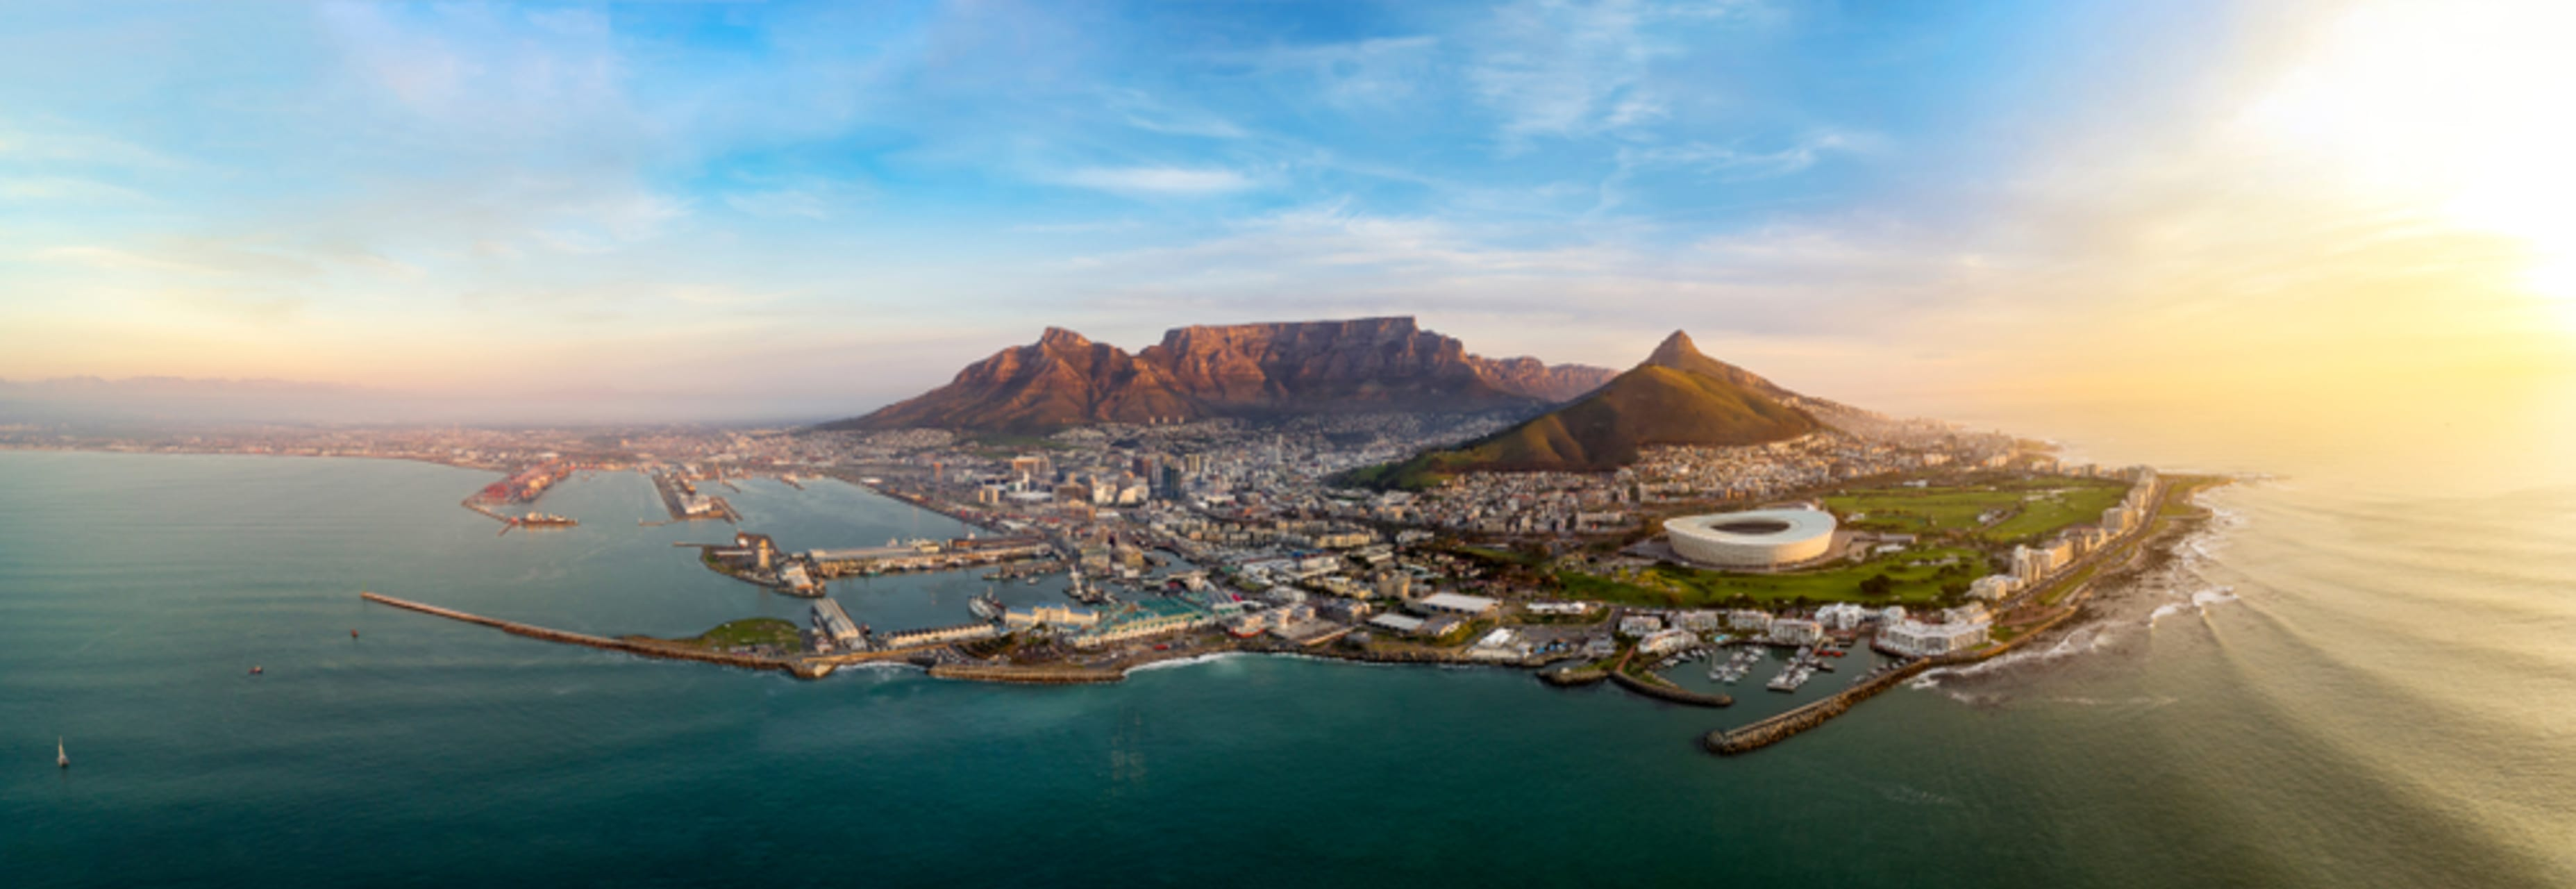 Cape Town cover image